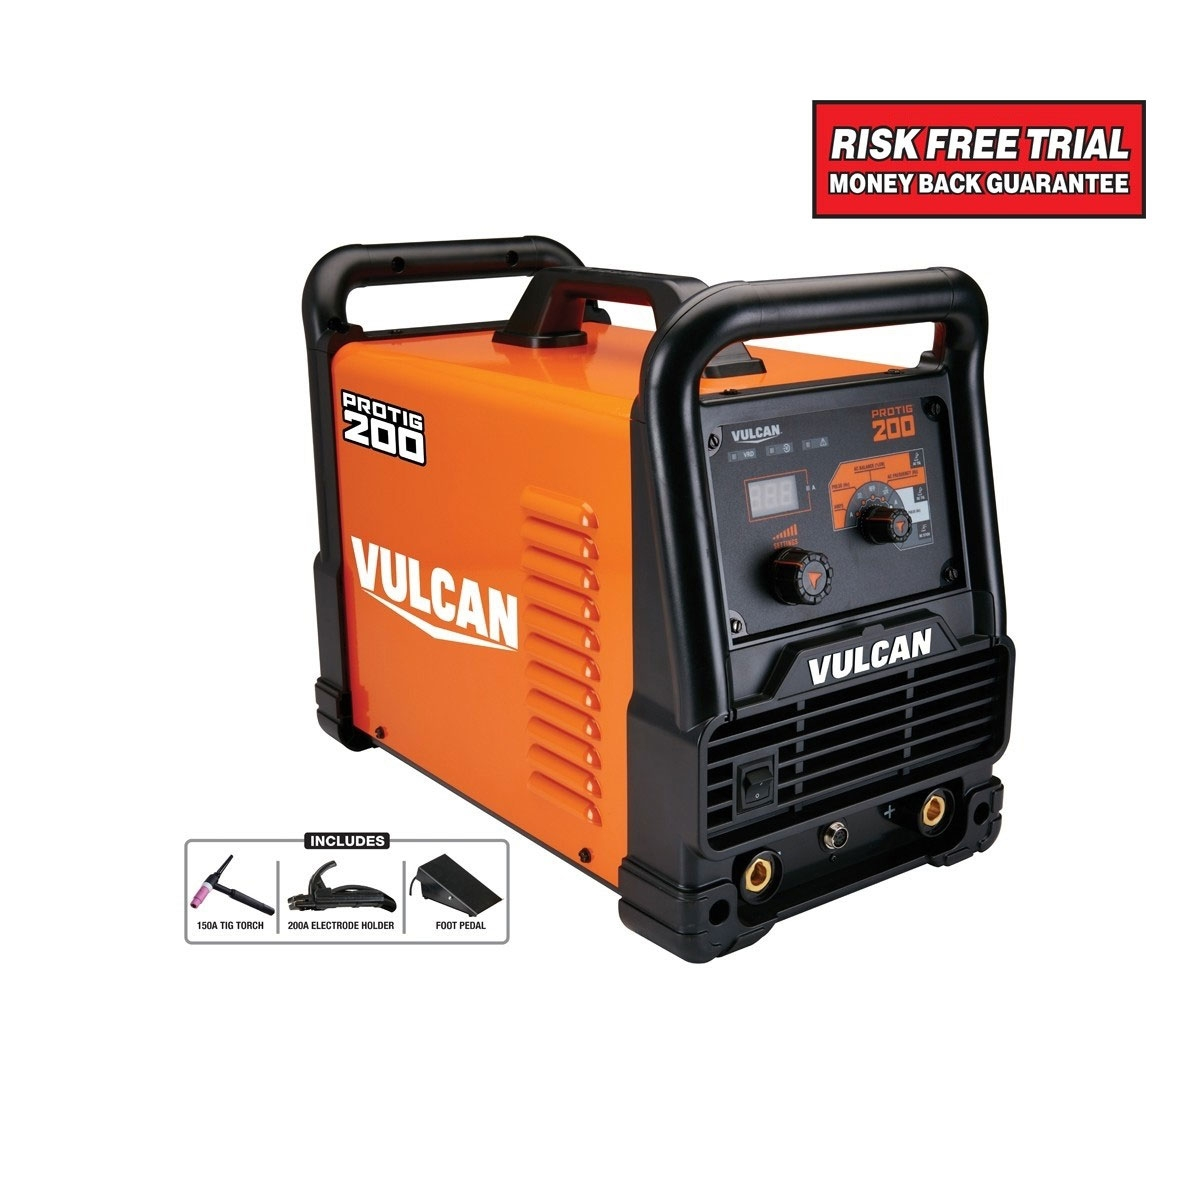 Protig 200 Industrial Welder With 120 240 Volt Input Lincoln Foot Pedal Wiring Diagram